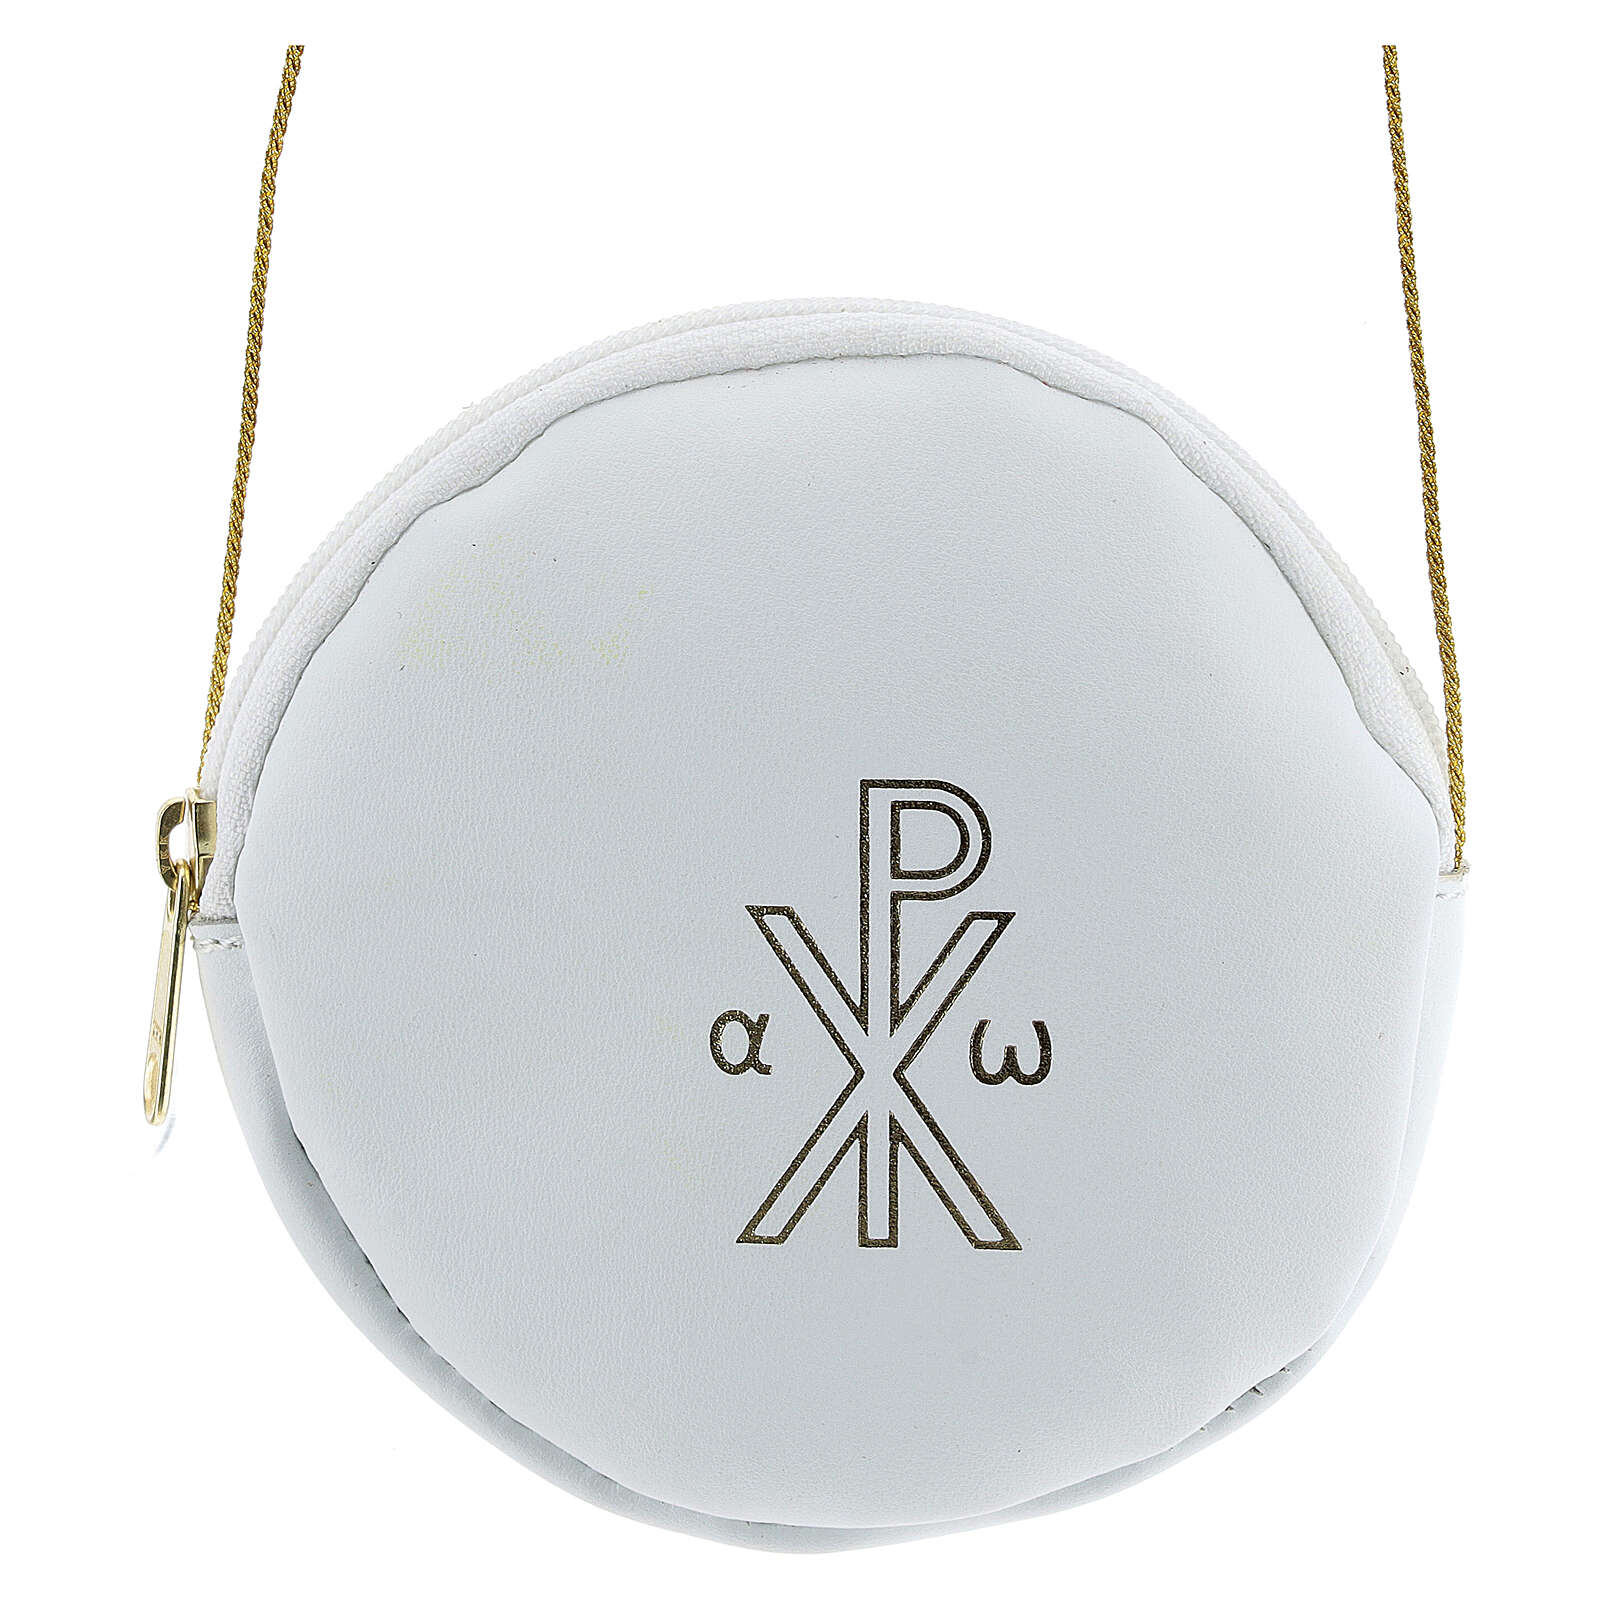 Paten case in real white leather monogram Christ gold 12 cm 4